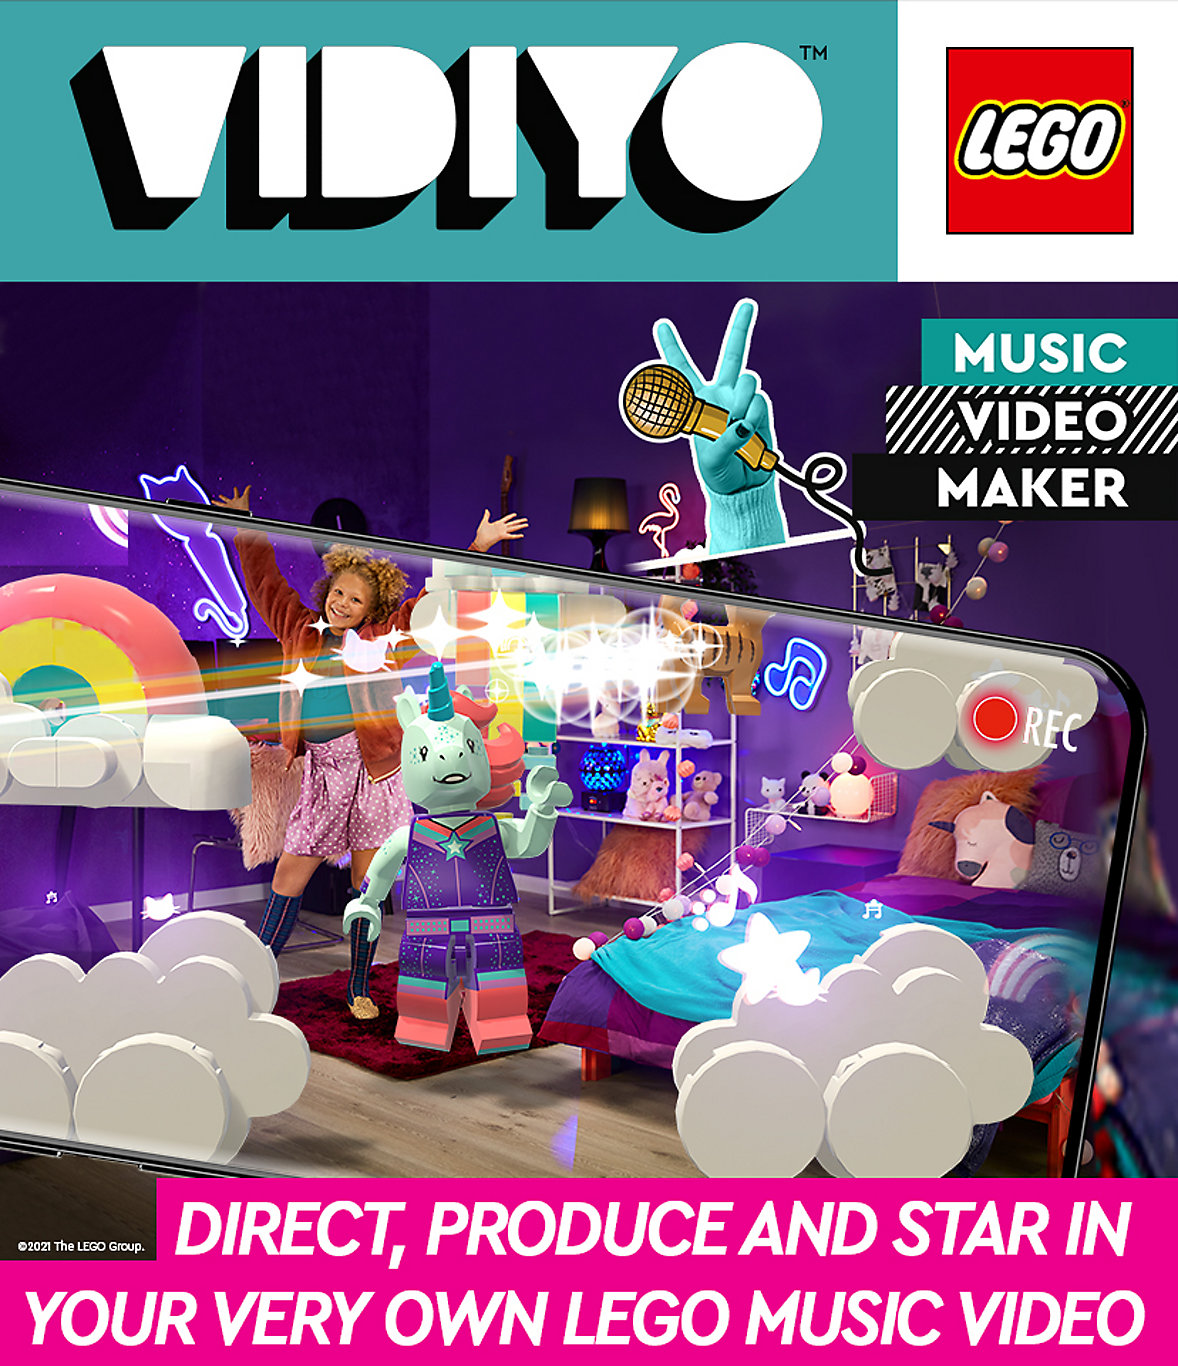 Shop LEGO Vidiyo to star in your very own music video